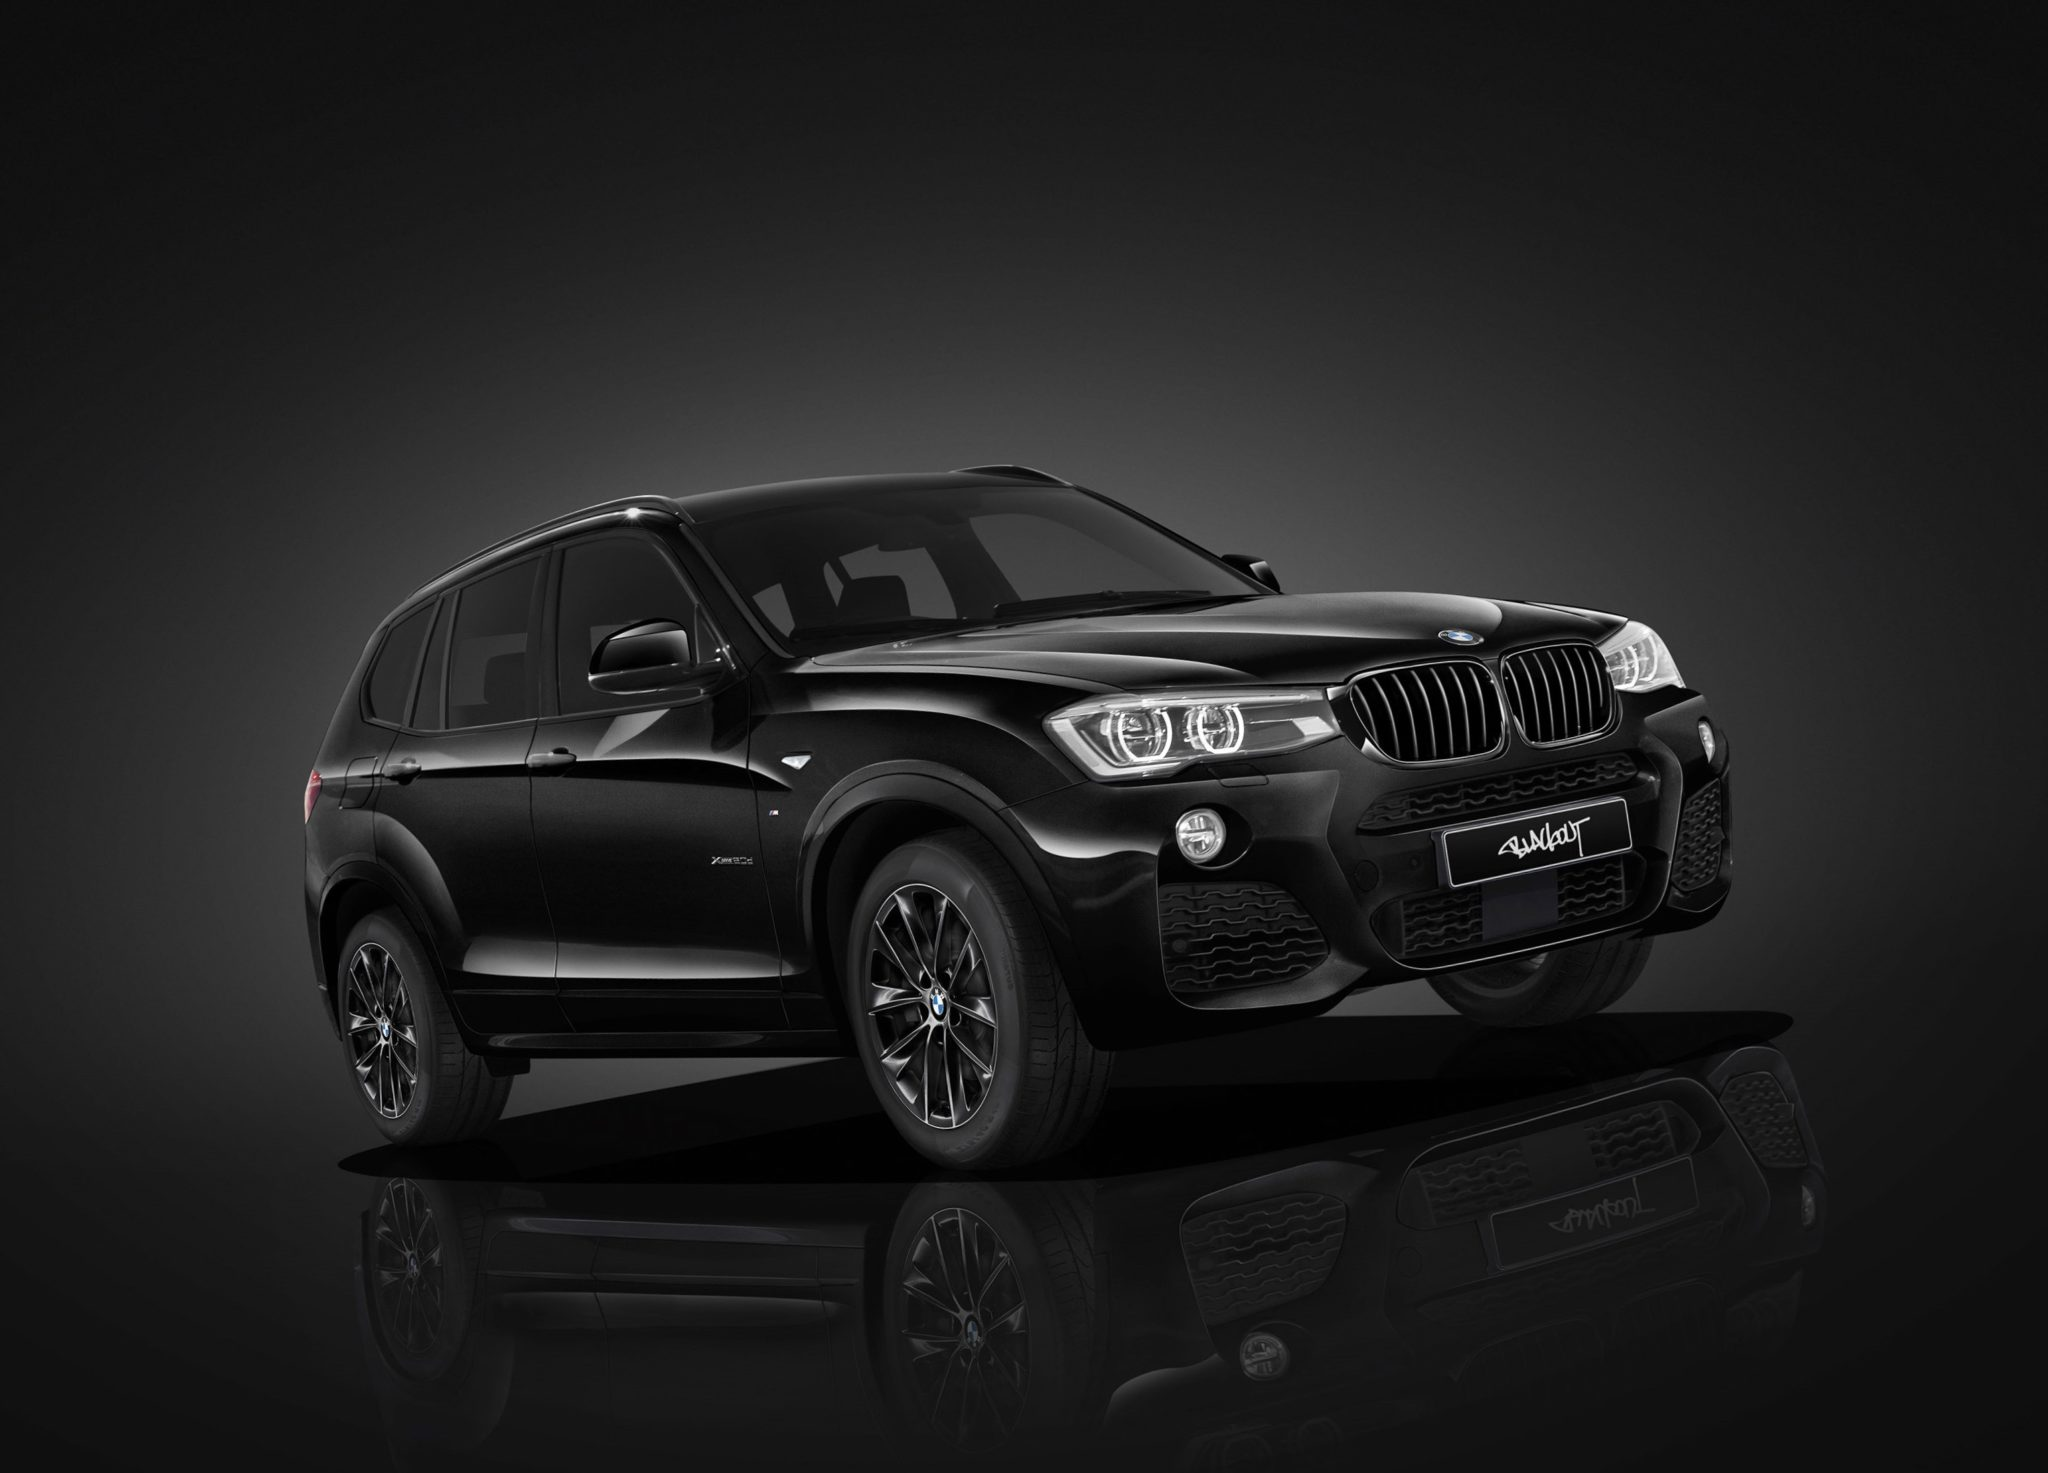 2016 Bmw X3 Xdrive 20D M Sport Blackout F25